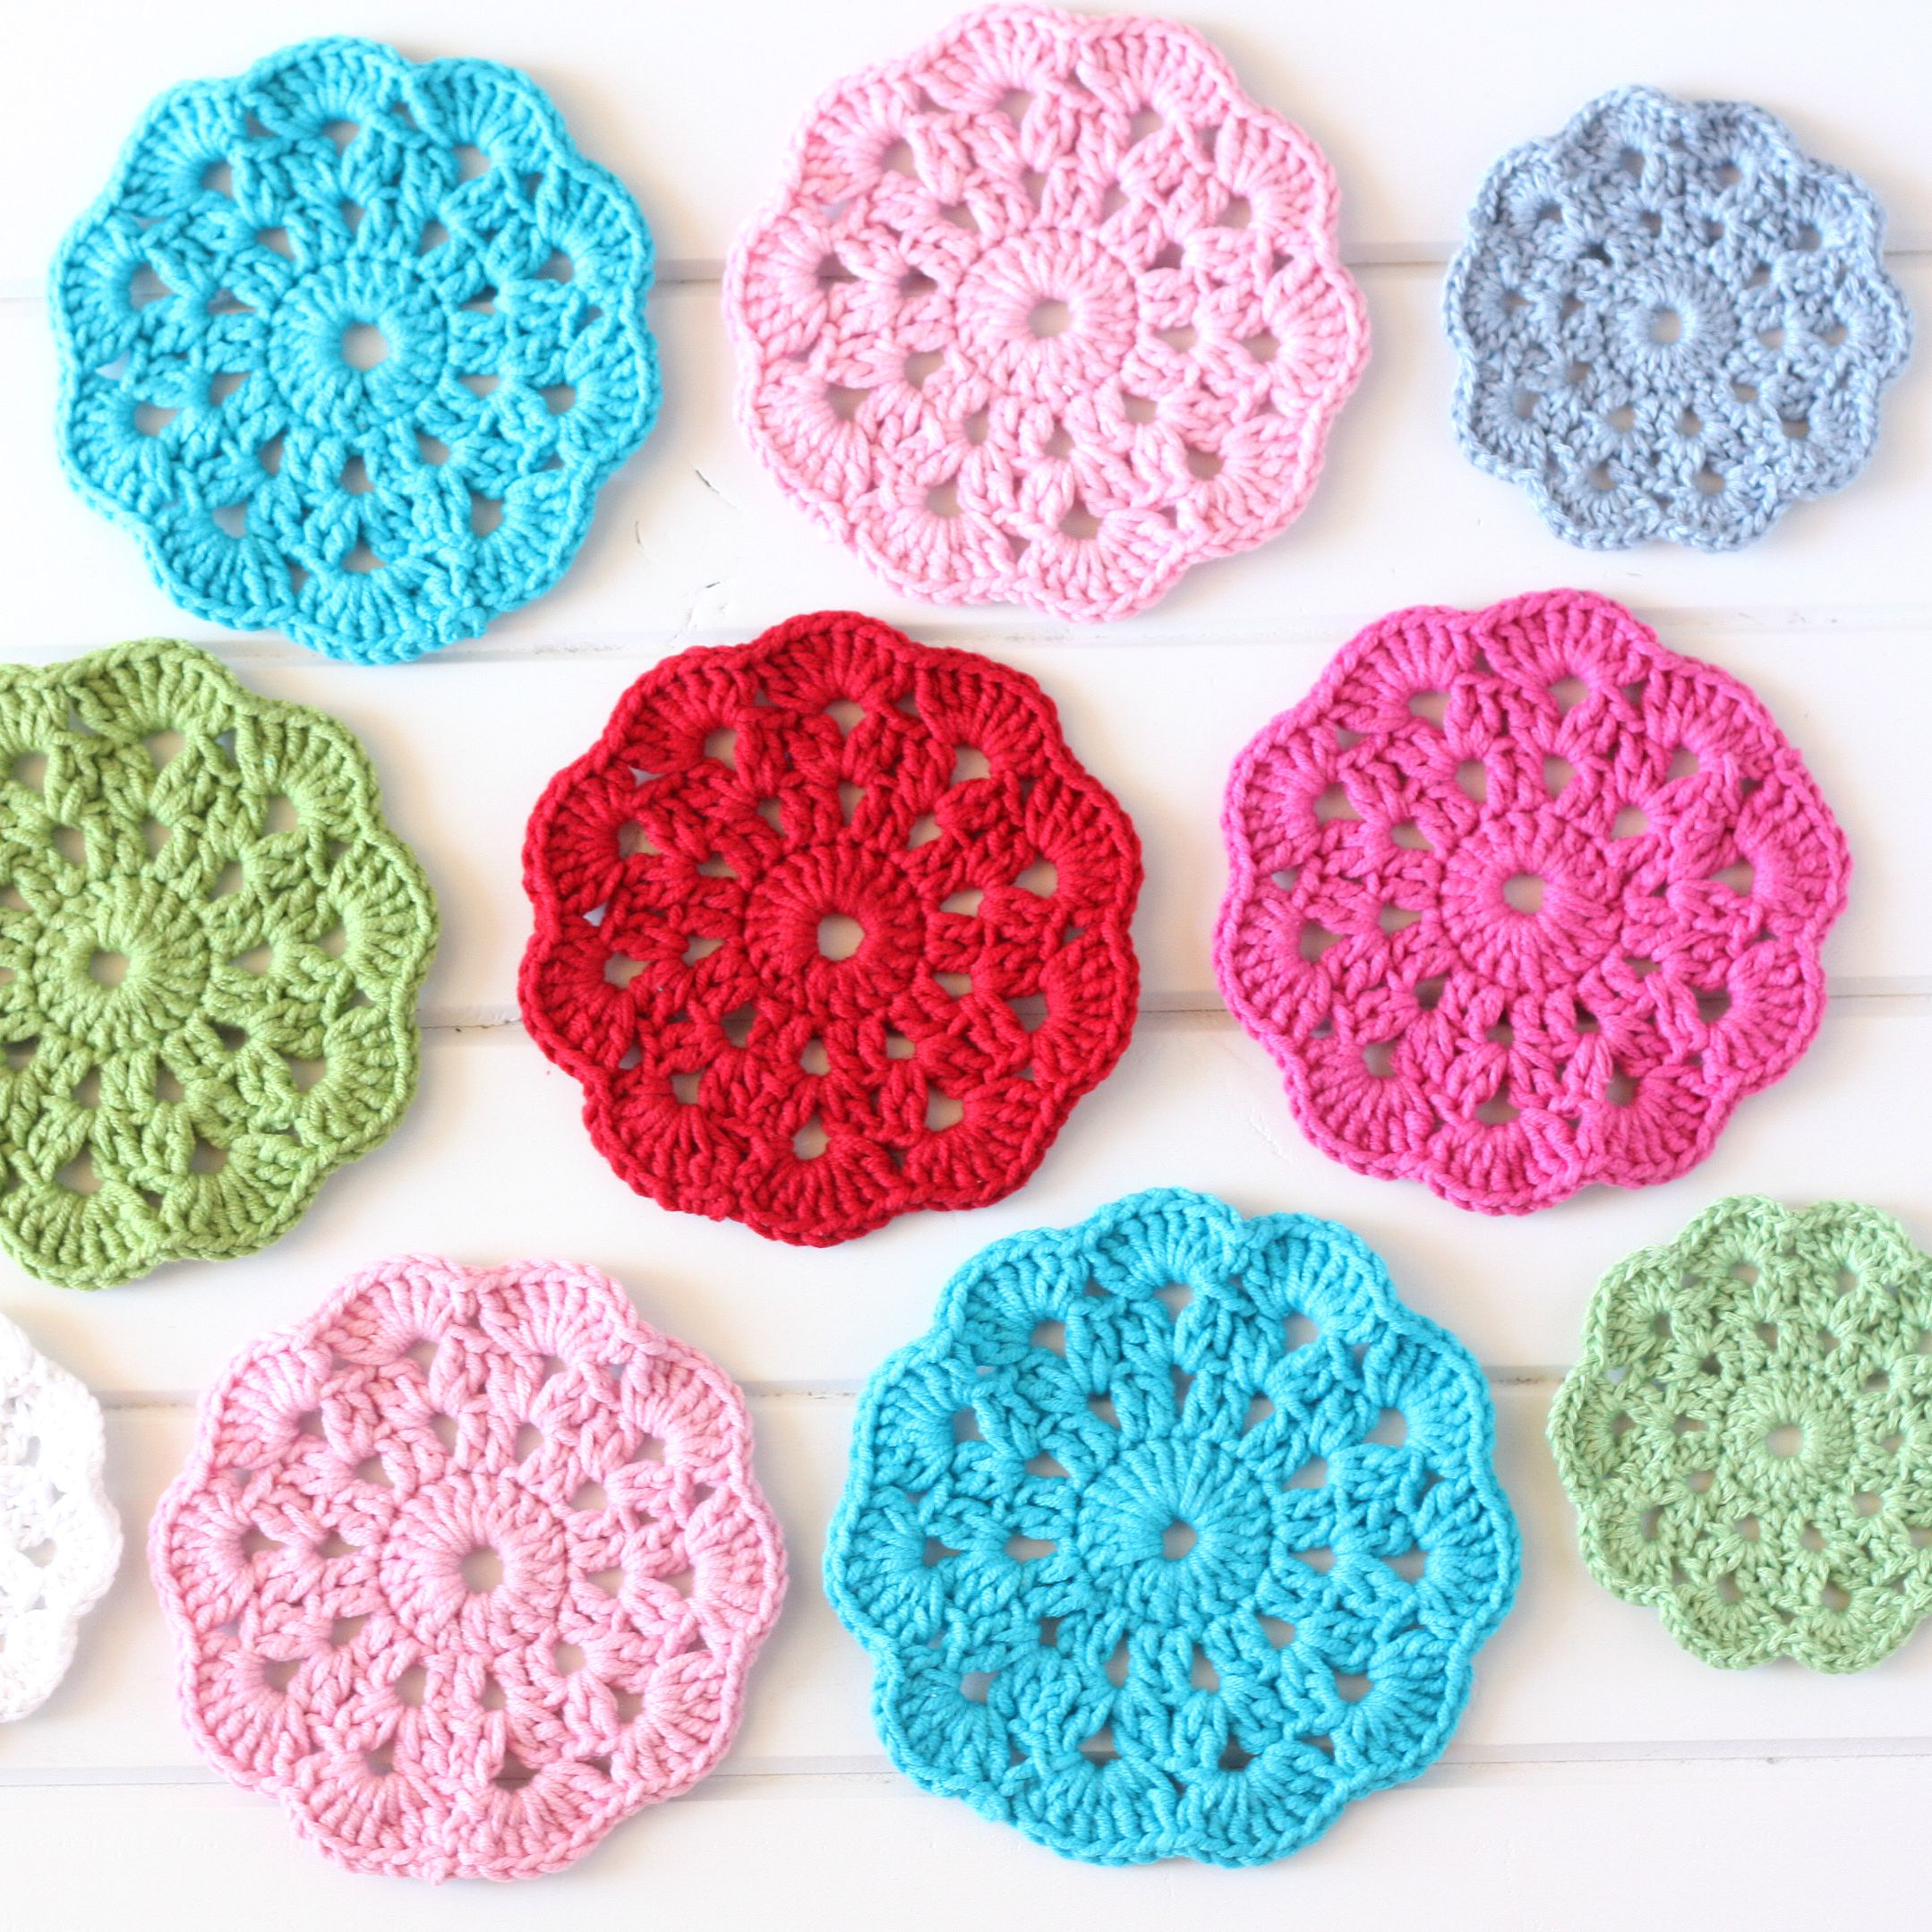 Crochet Coasters : Crochet Coasters A Spoonful of Sugar Bloglovin?